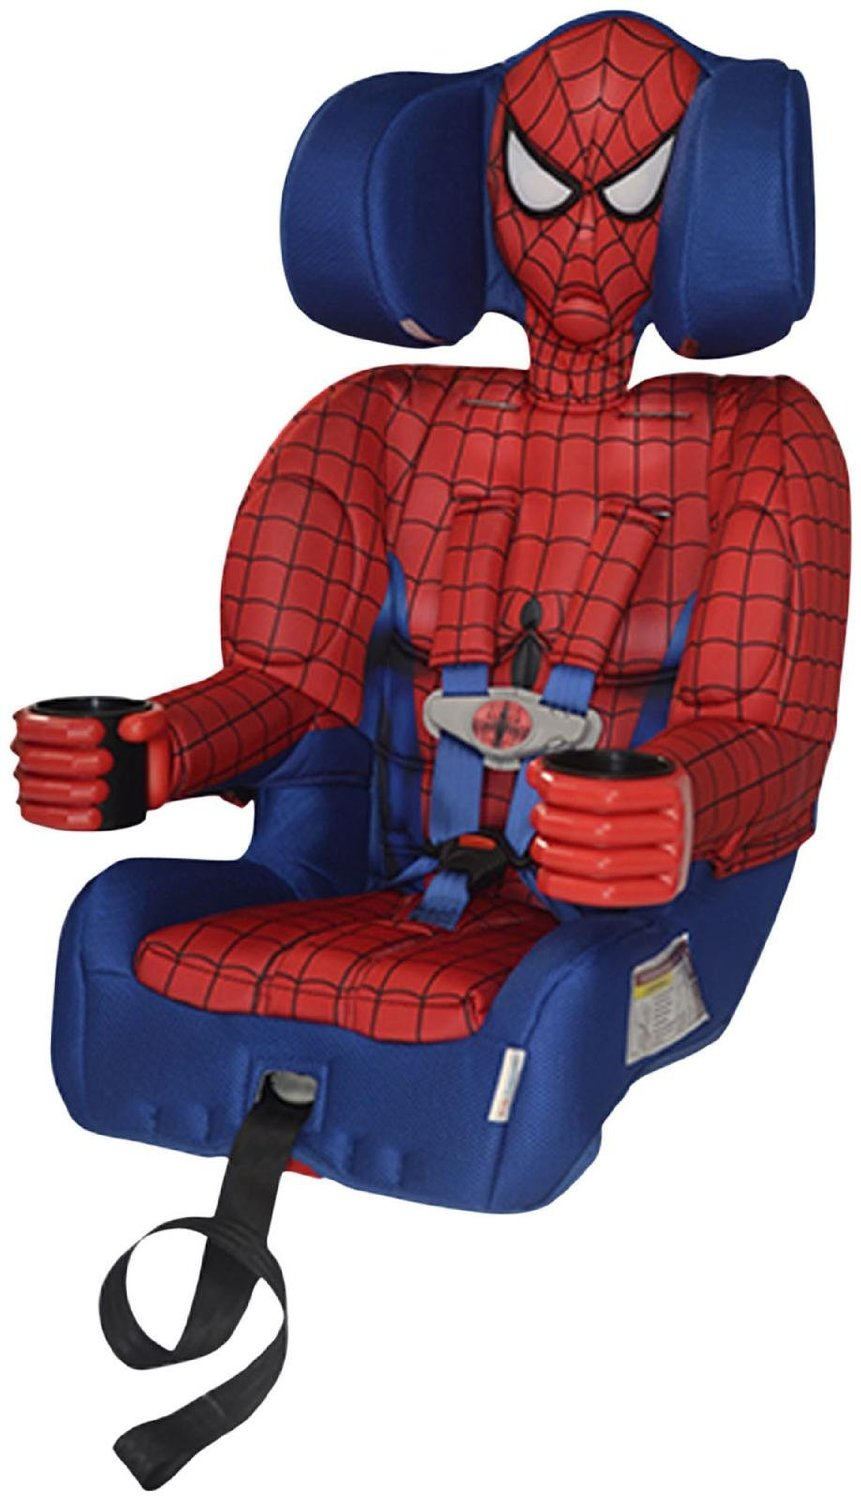 booster chairs for kids electric recliner lift chair perth the 4 most awesome superhero seats your news wheel